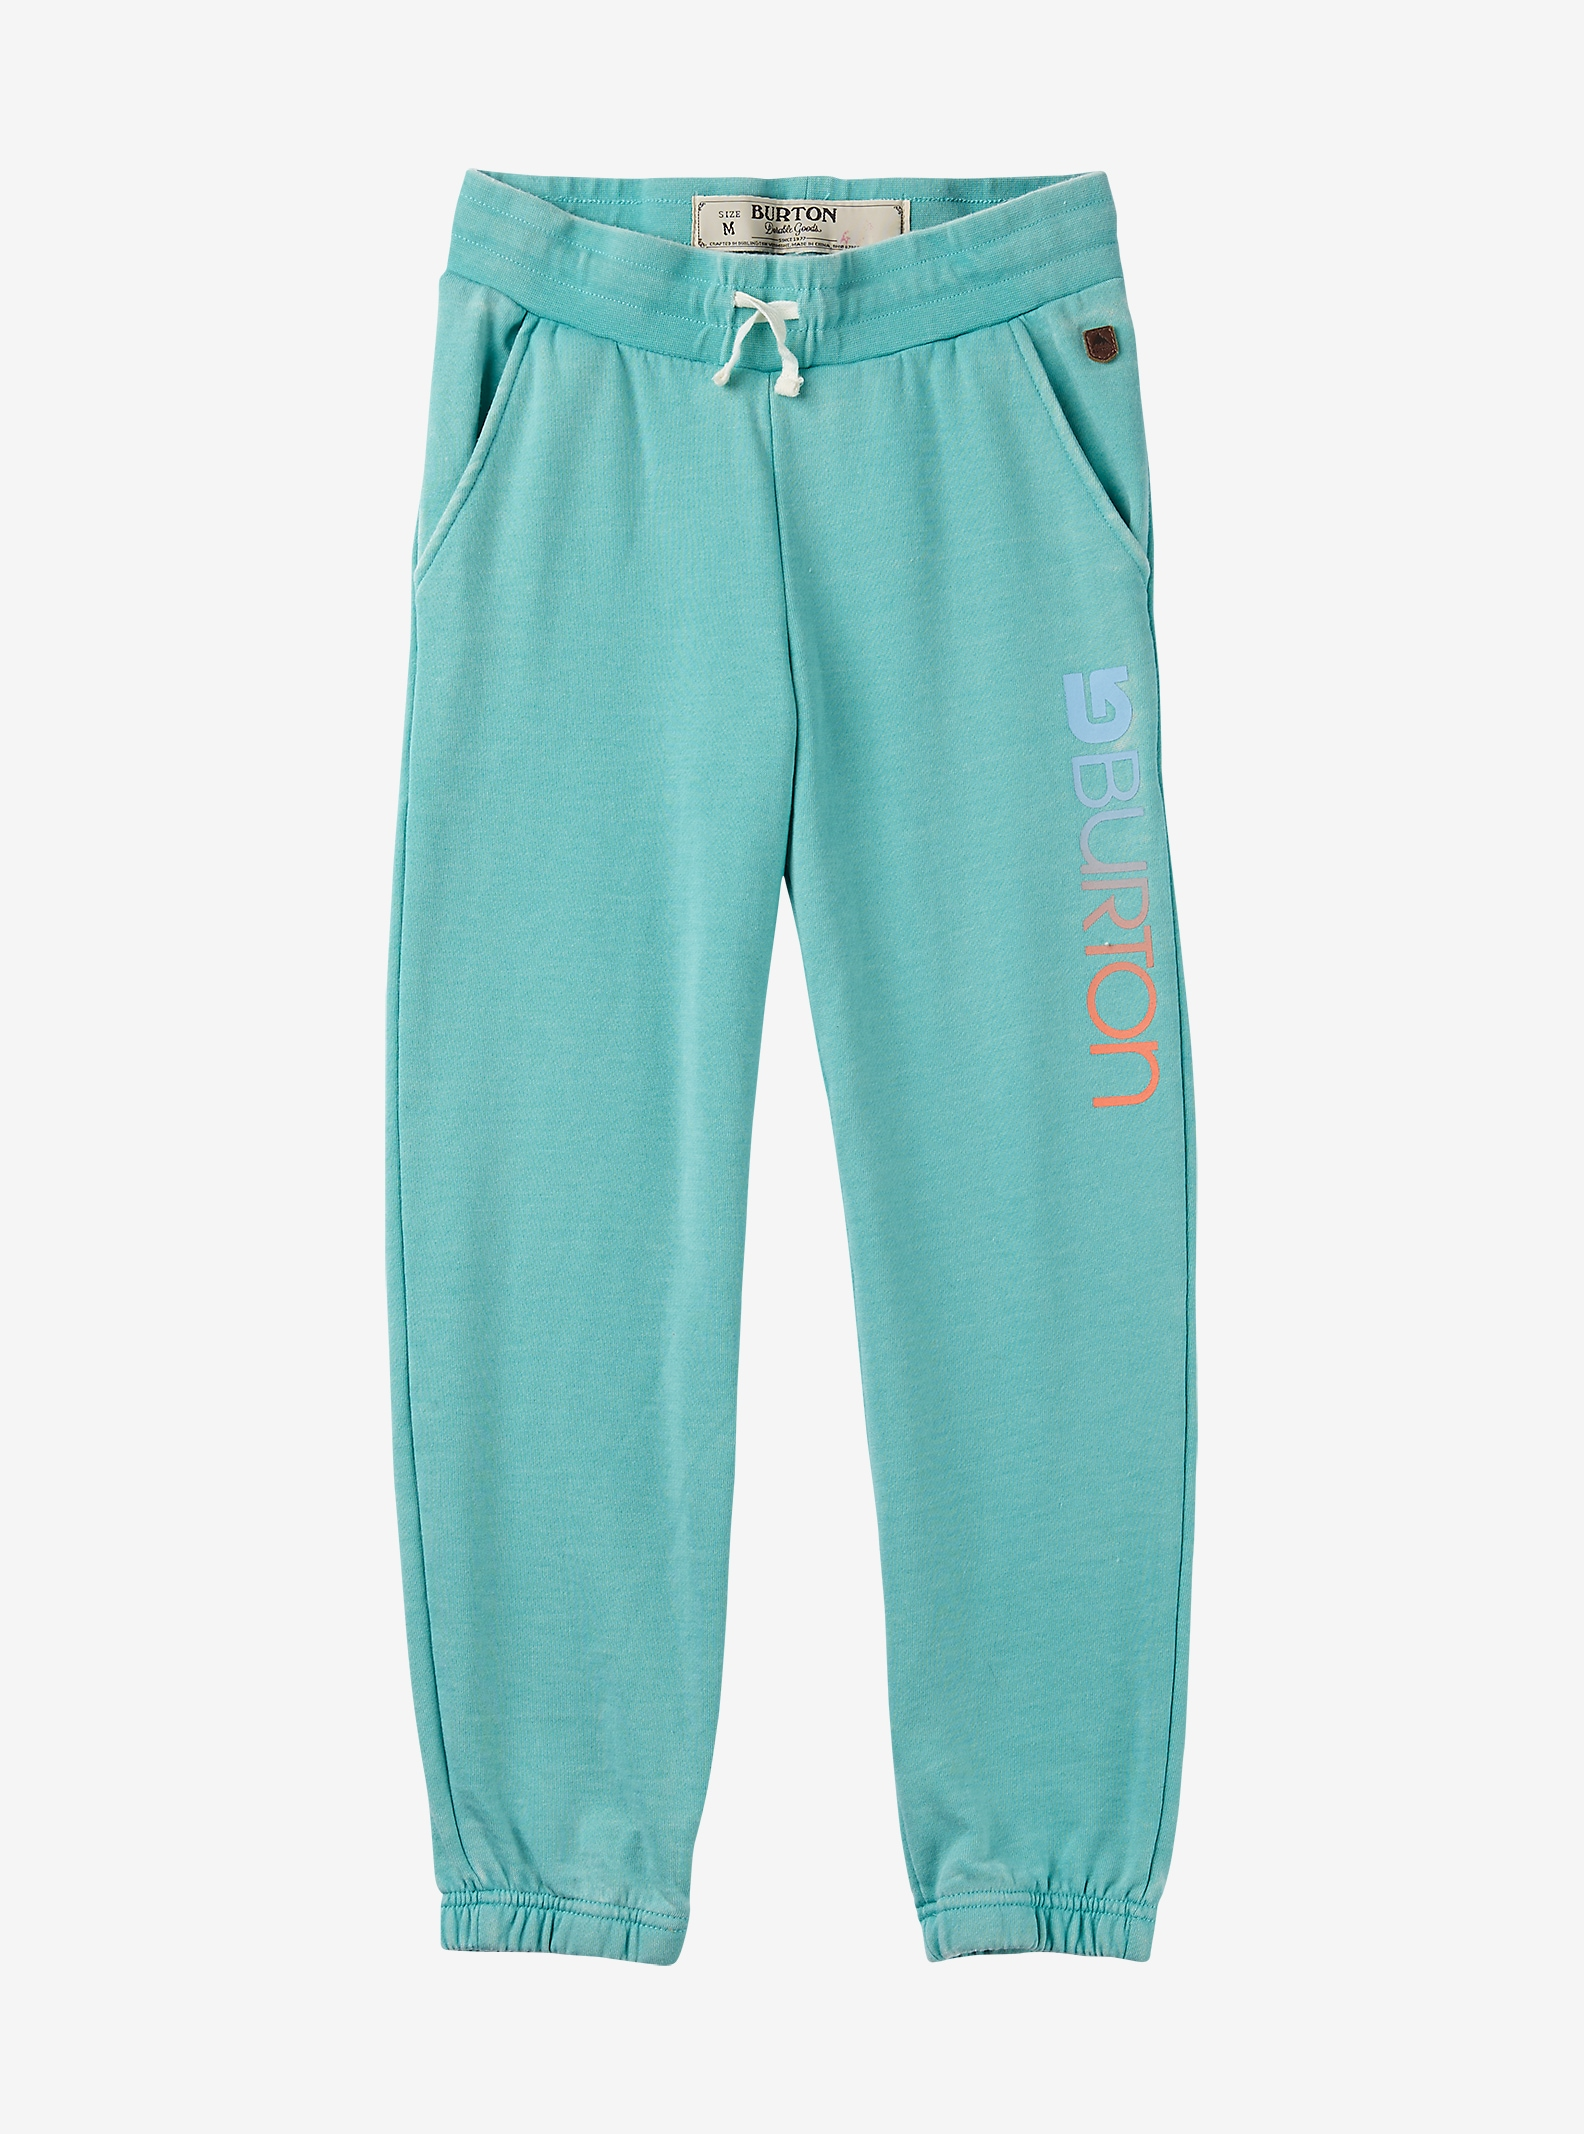 Burton Girls' Eureka Sweatpant shown in Lagoon